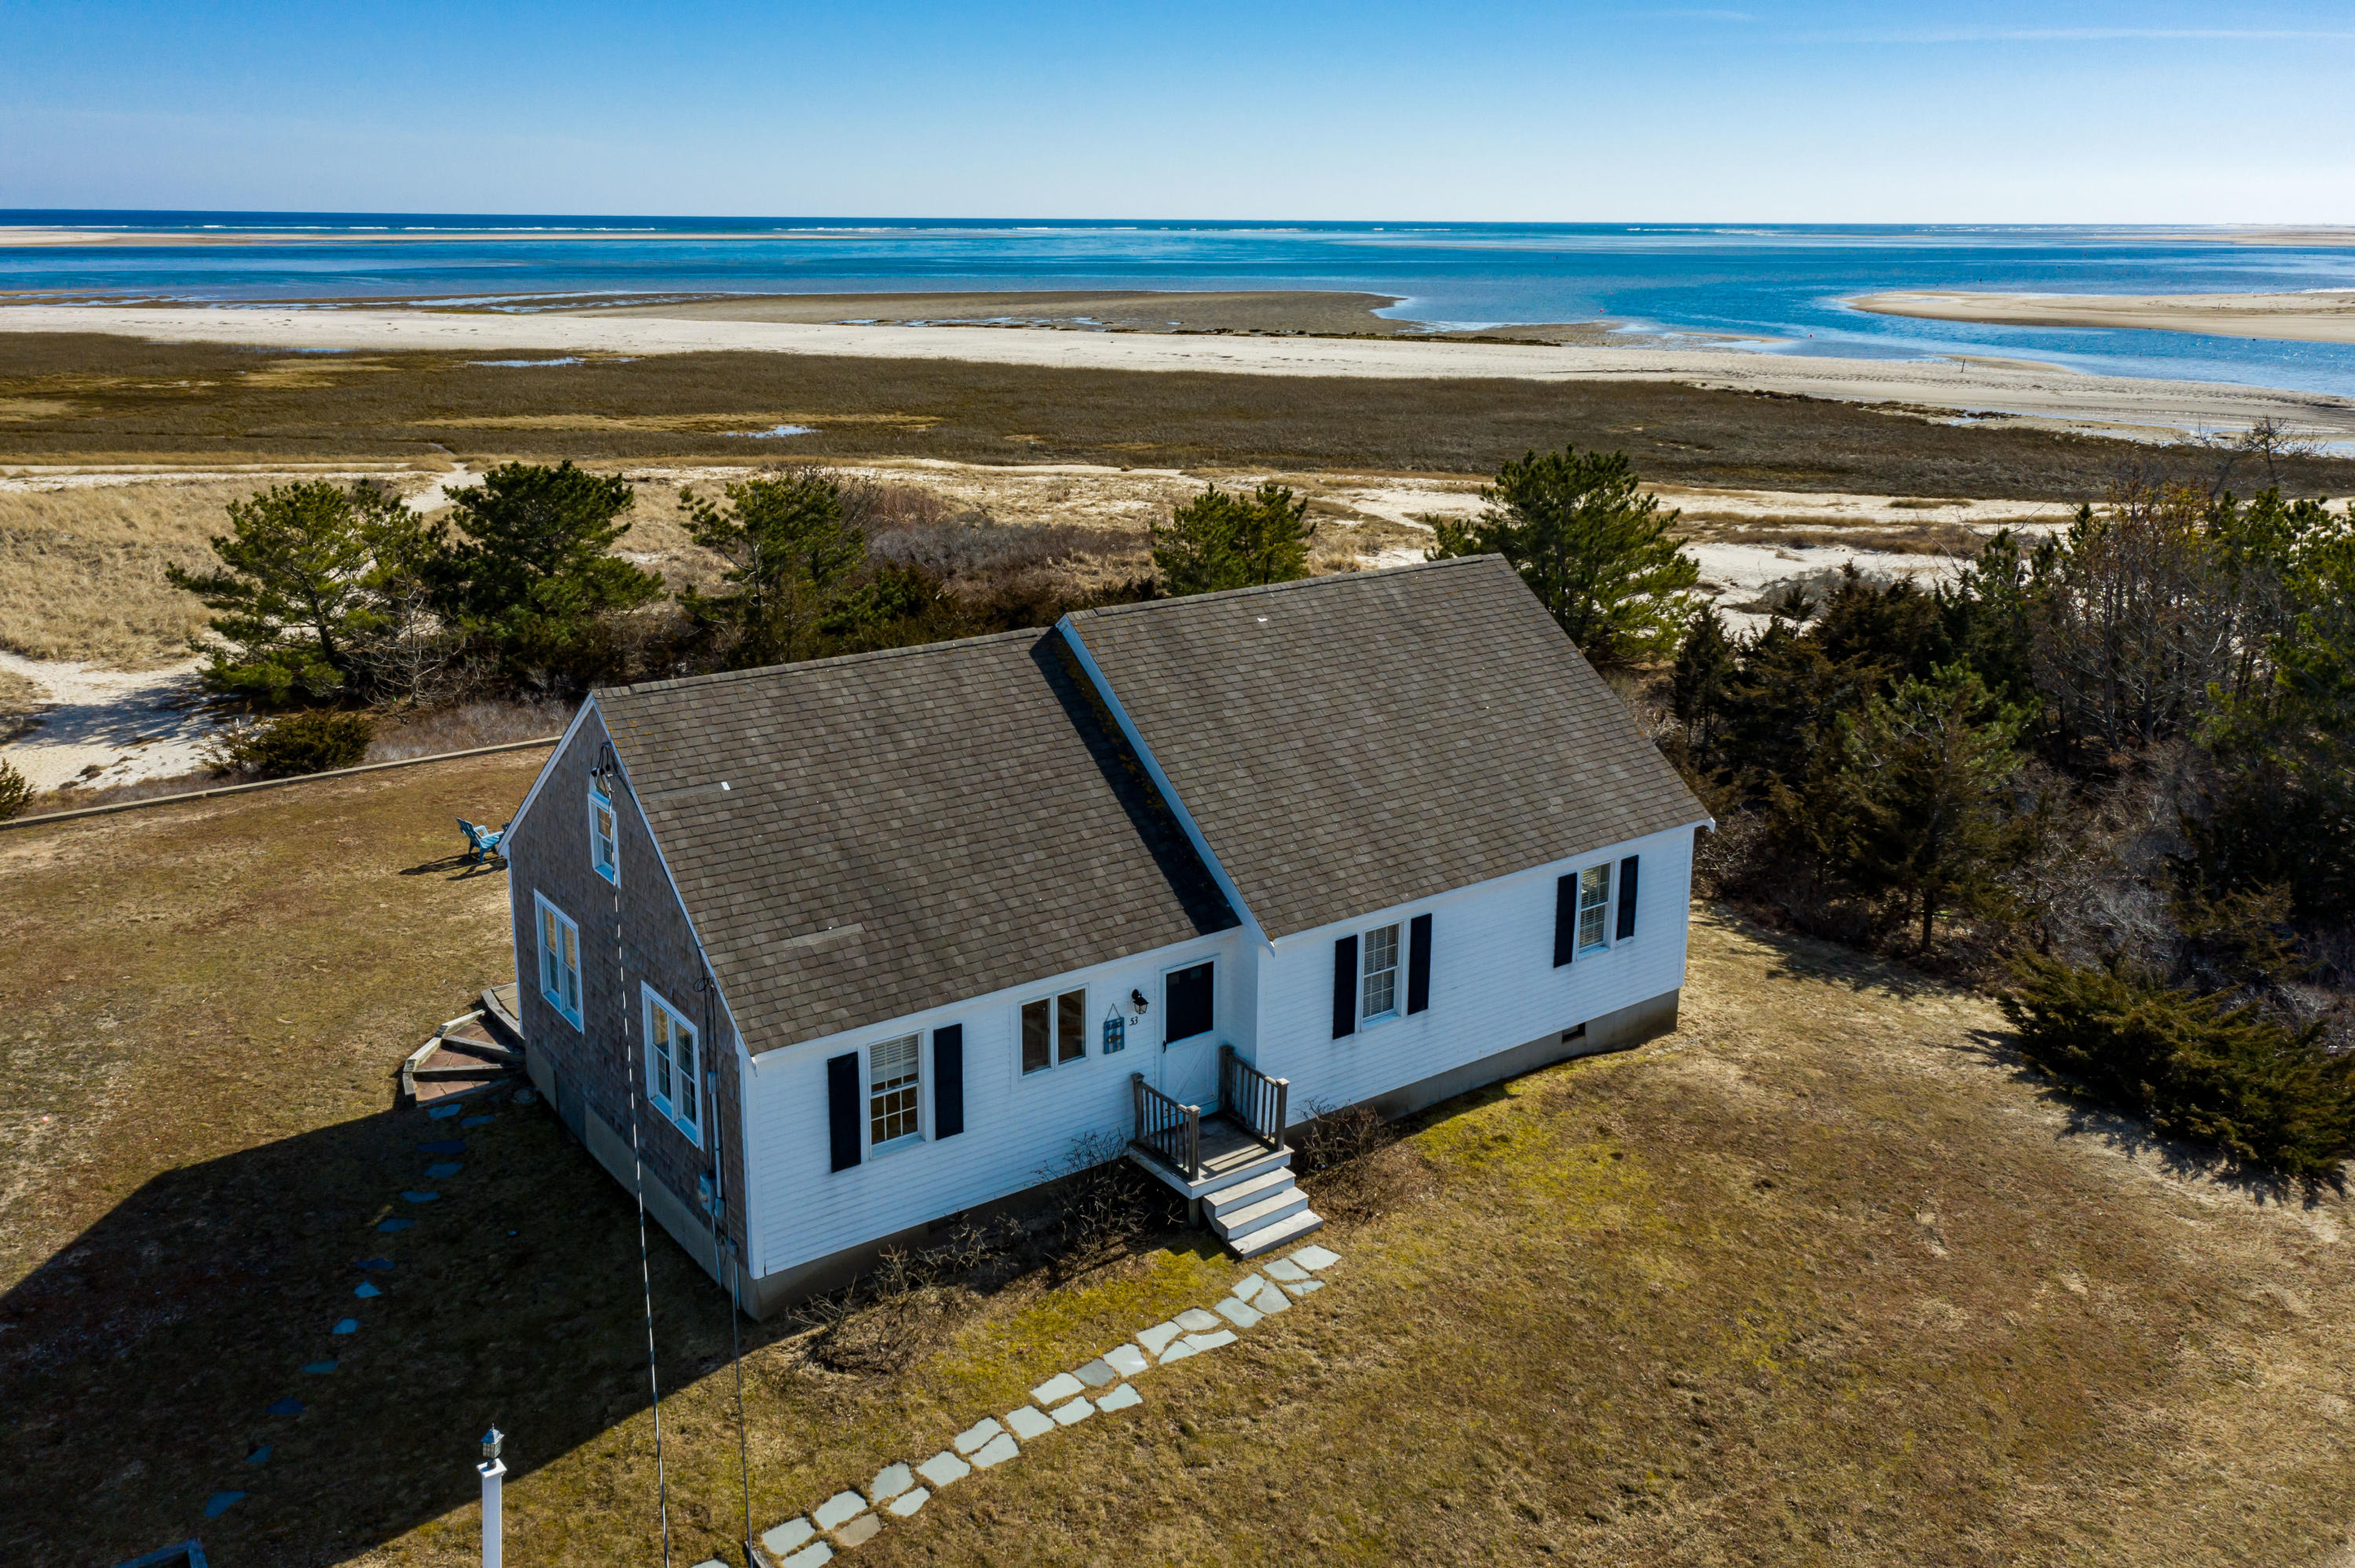 53 Little Beach Road, Chatham MA, 02633 sales details